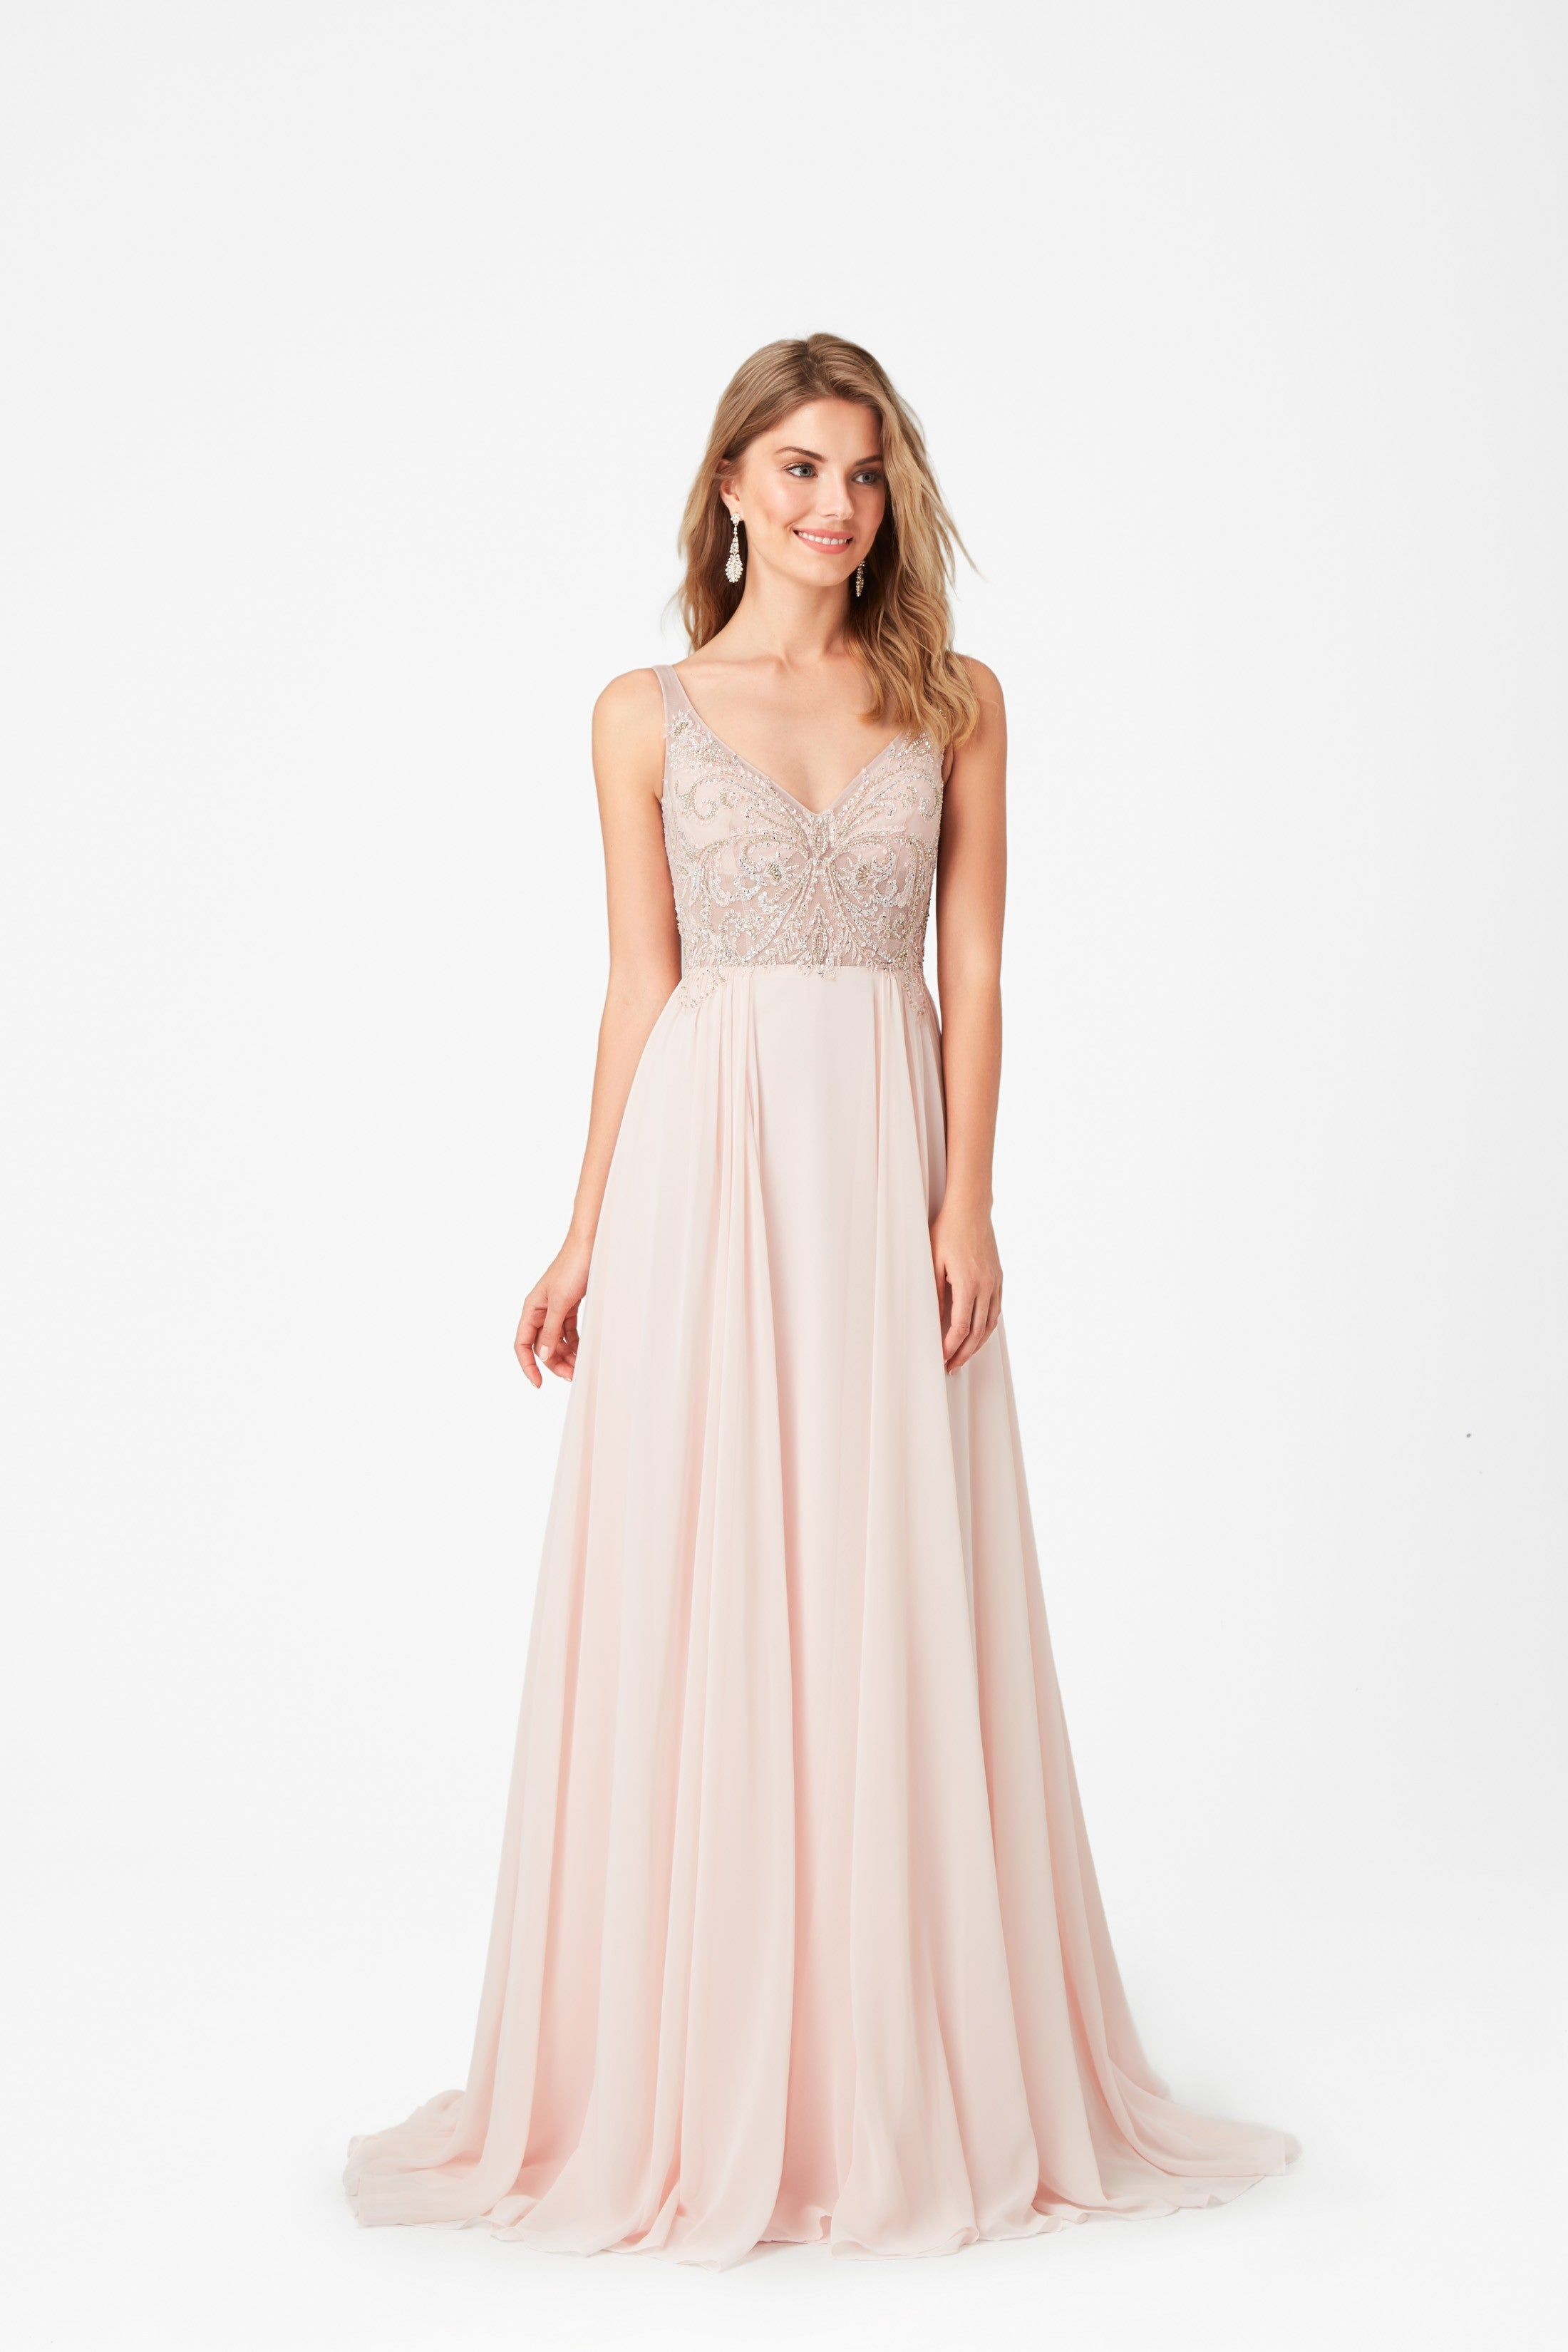 Soft petal pink formal dress with jewelled bodice and illusion back-4XLVC4344